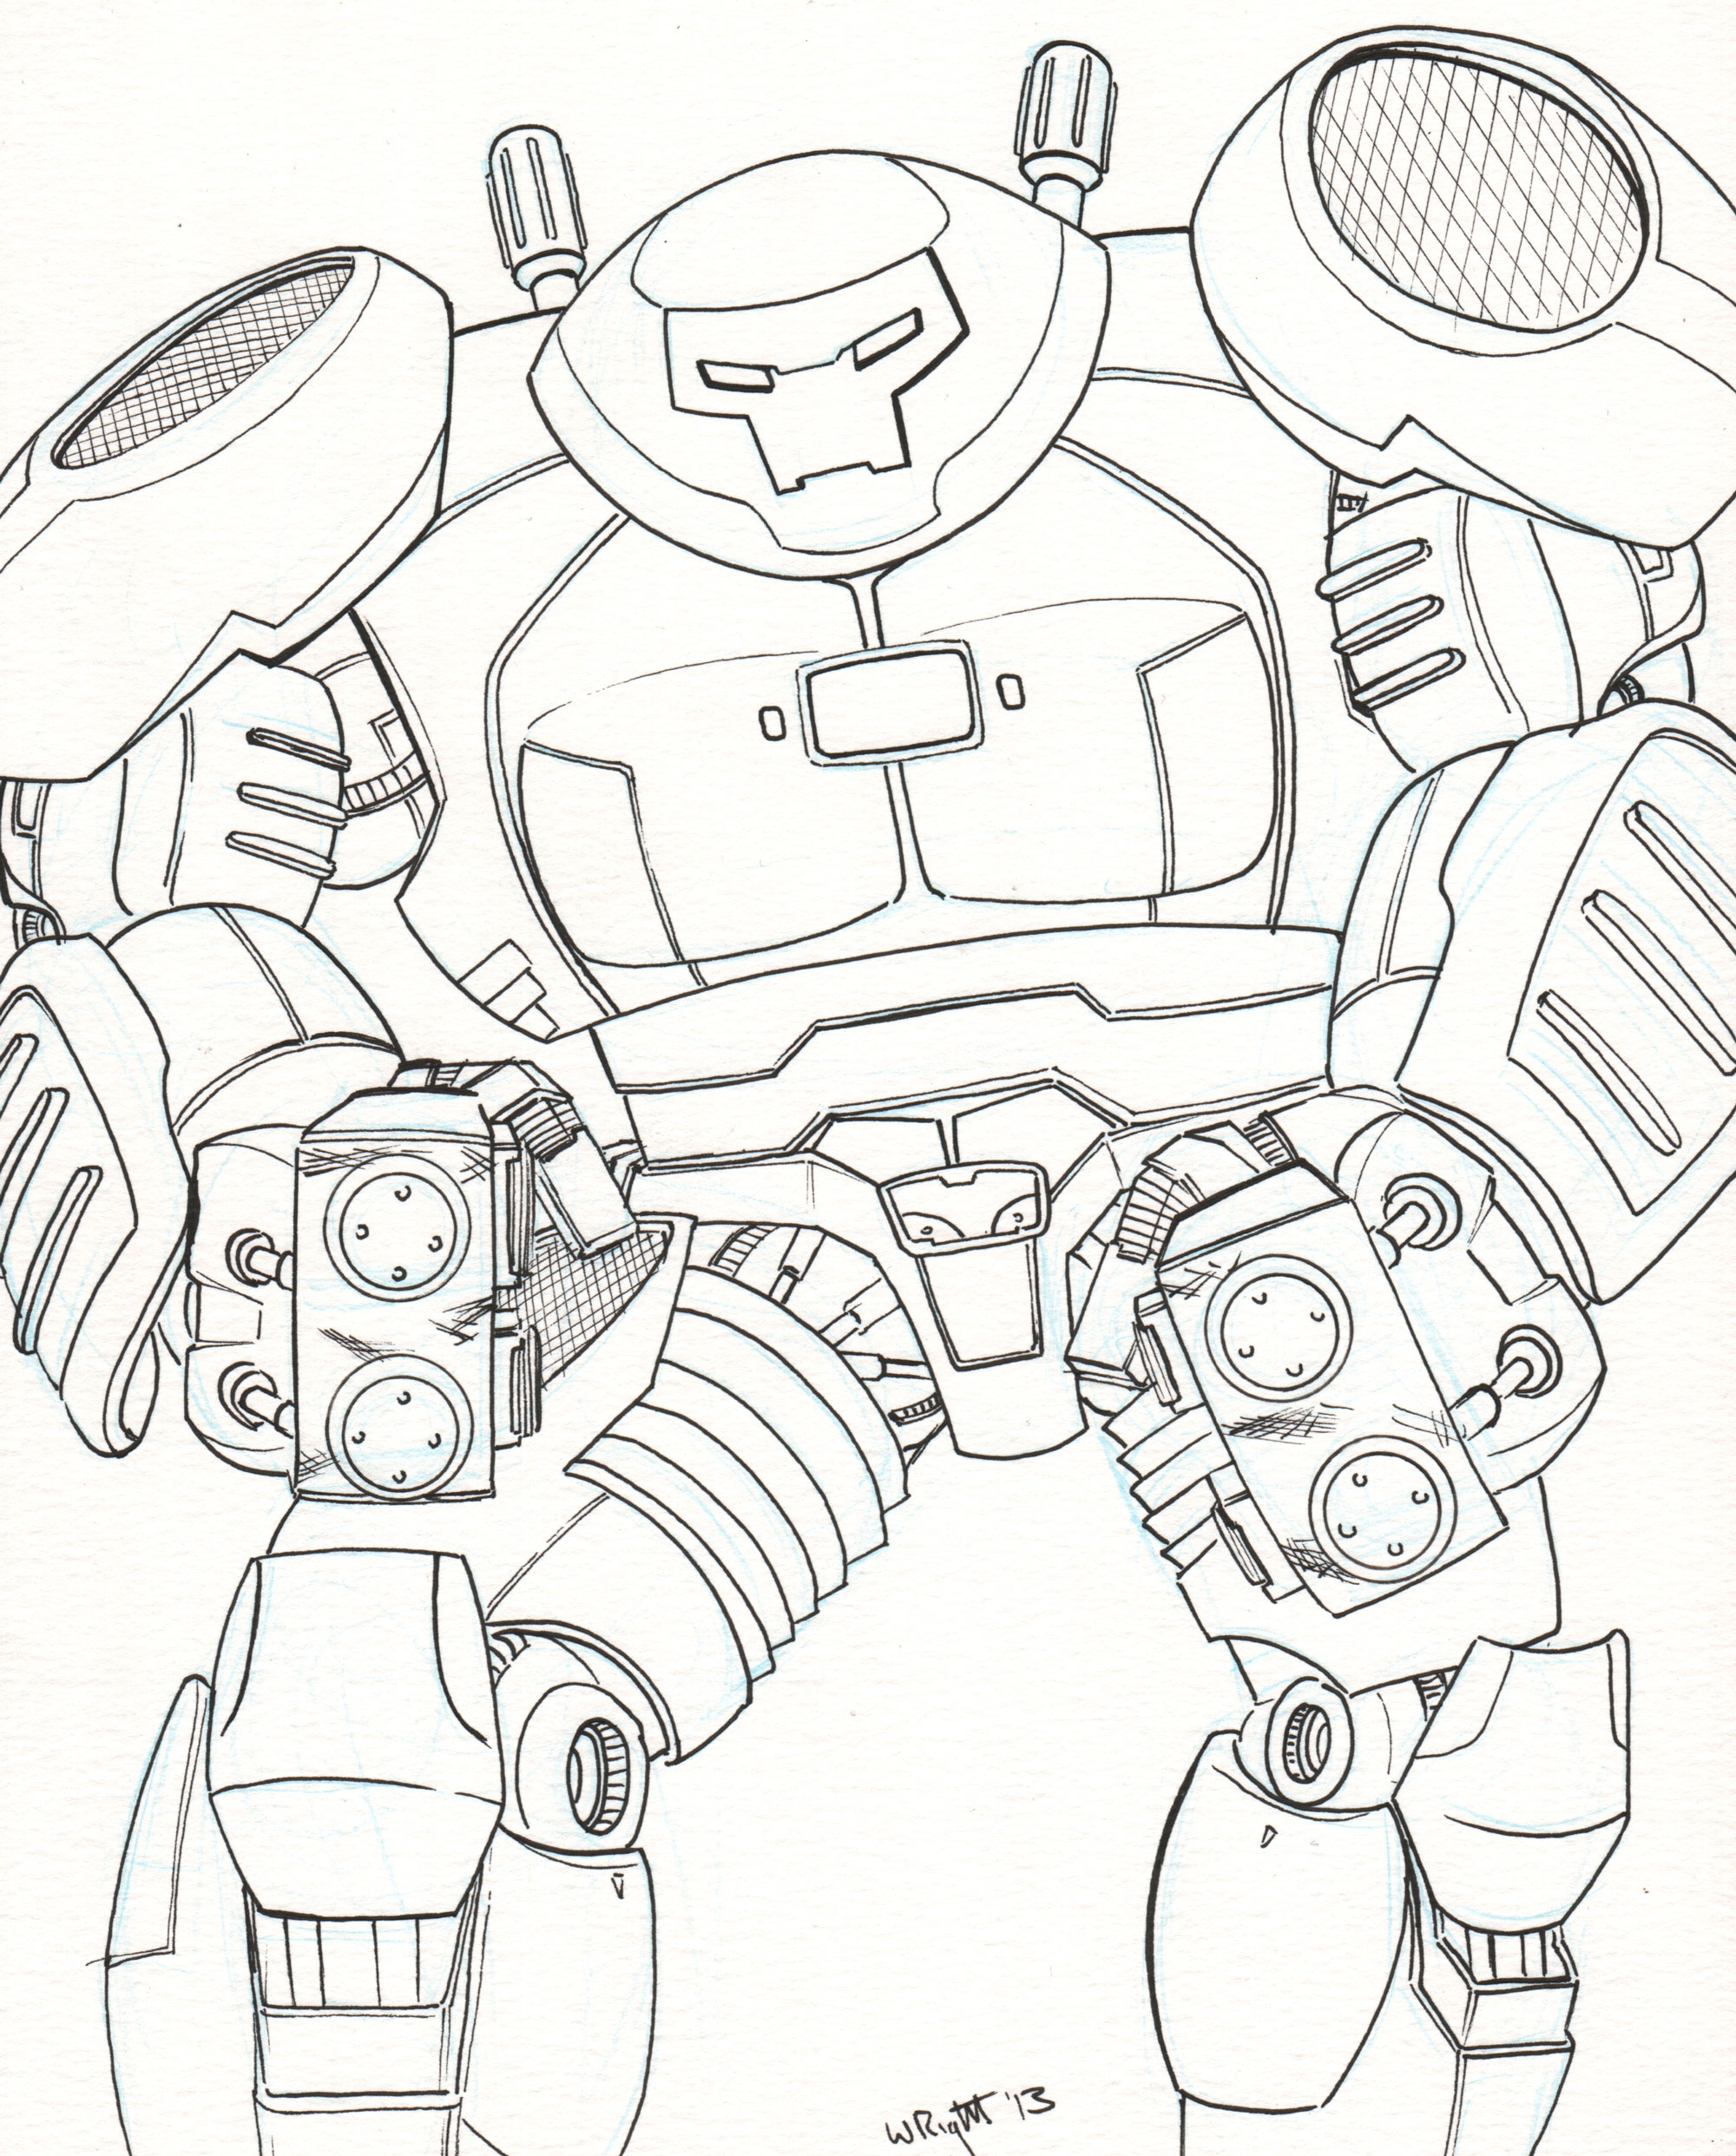 hulkbuster coloring pages - r=hulkbuster